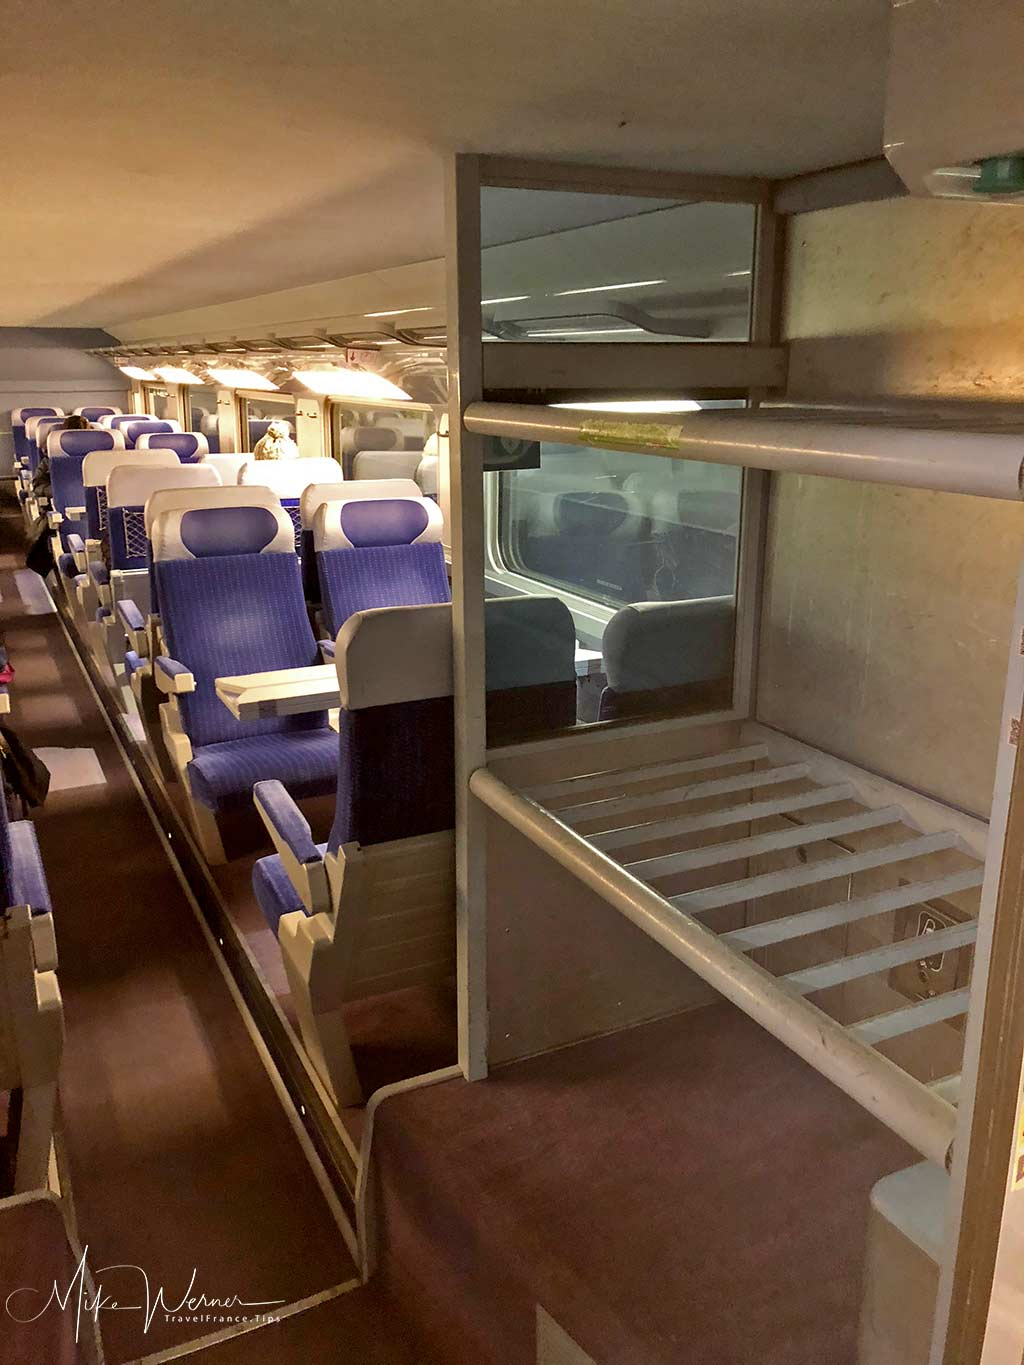 2nd class of one of the TGV trains, High Speed French train from the SNCF